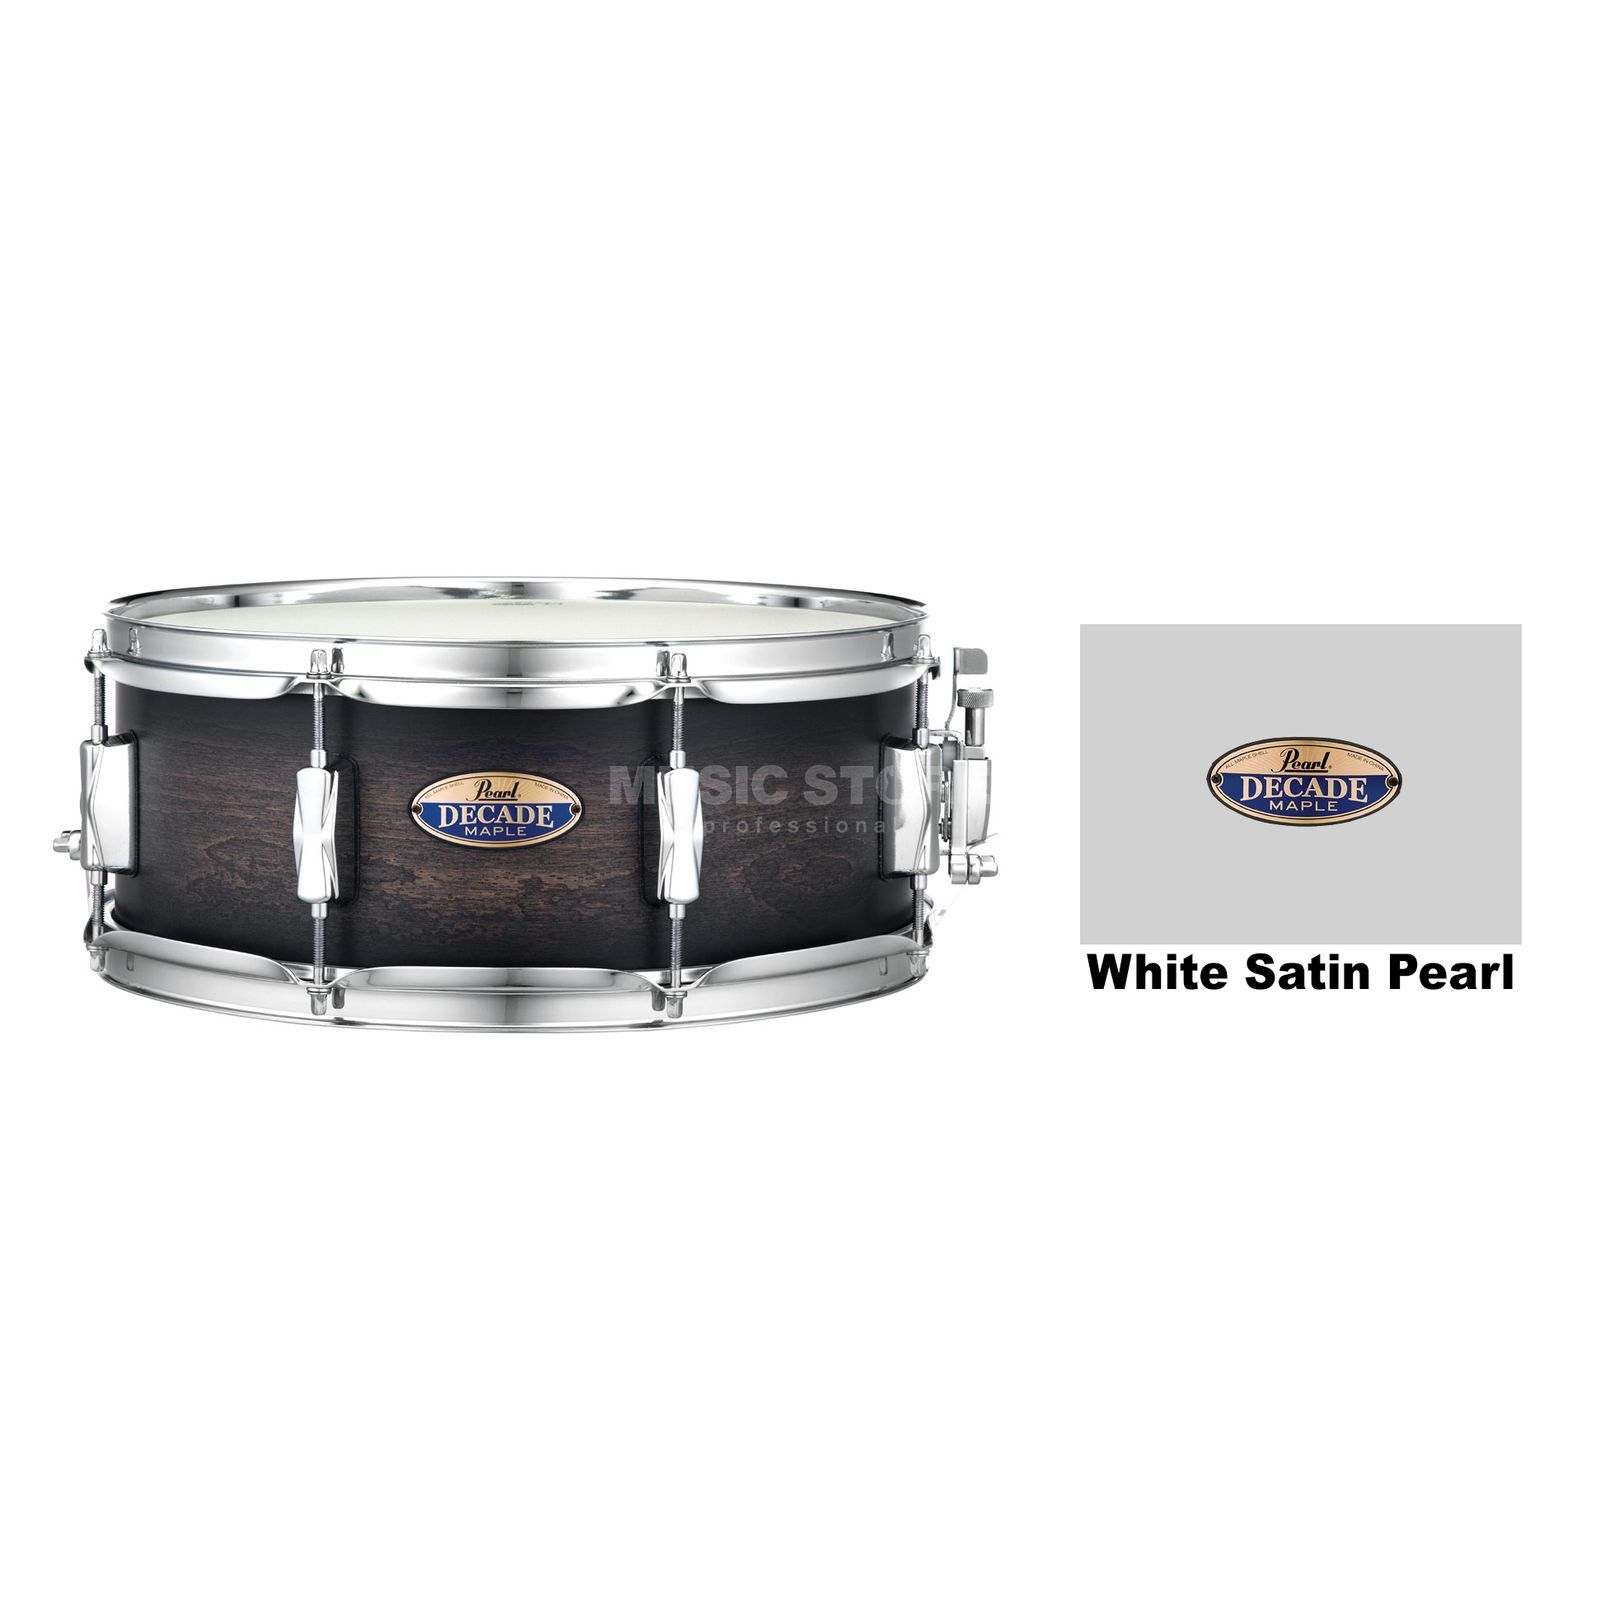 "Pearl Decade Maple Snare 14""x5,5"", White Satin Pearl Изображение товара"